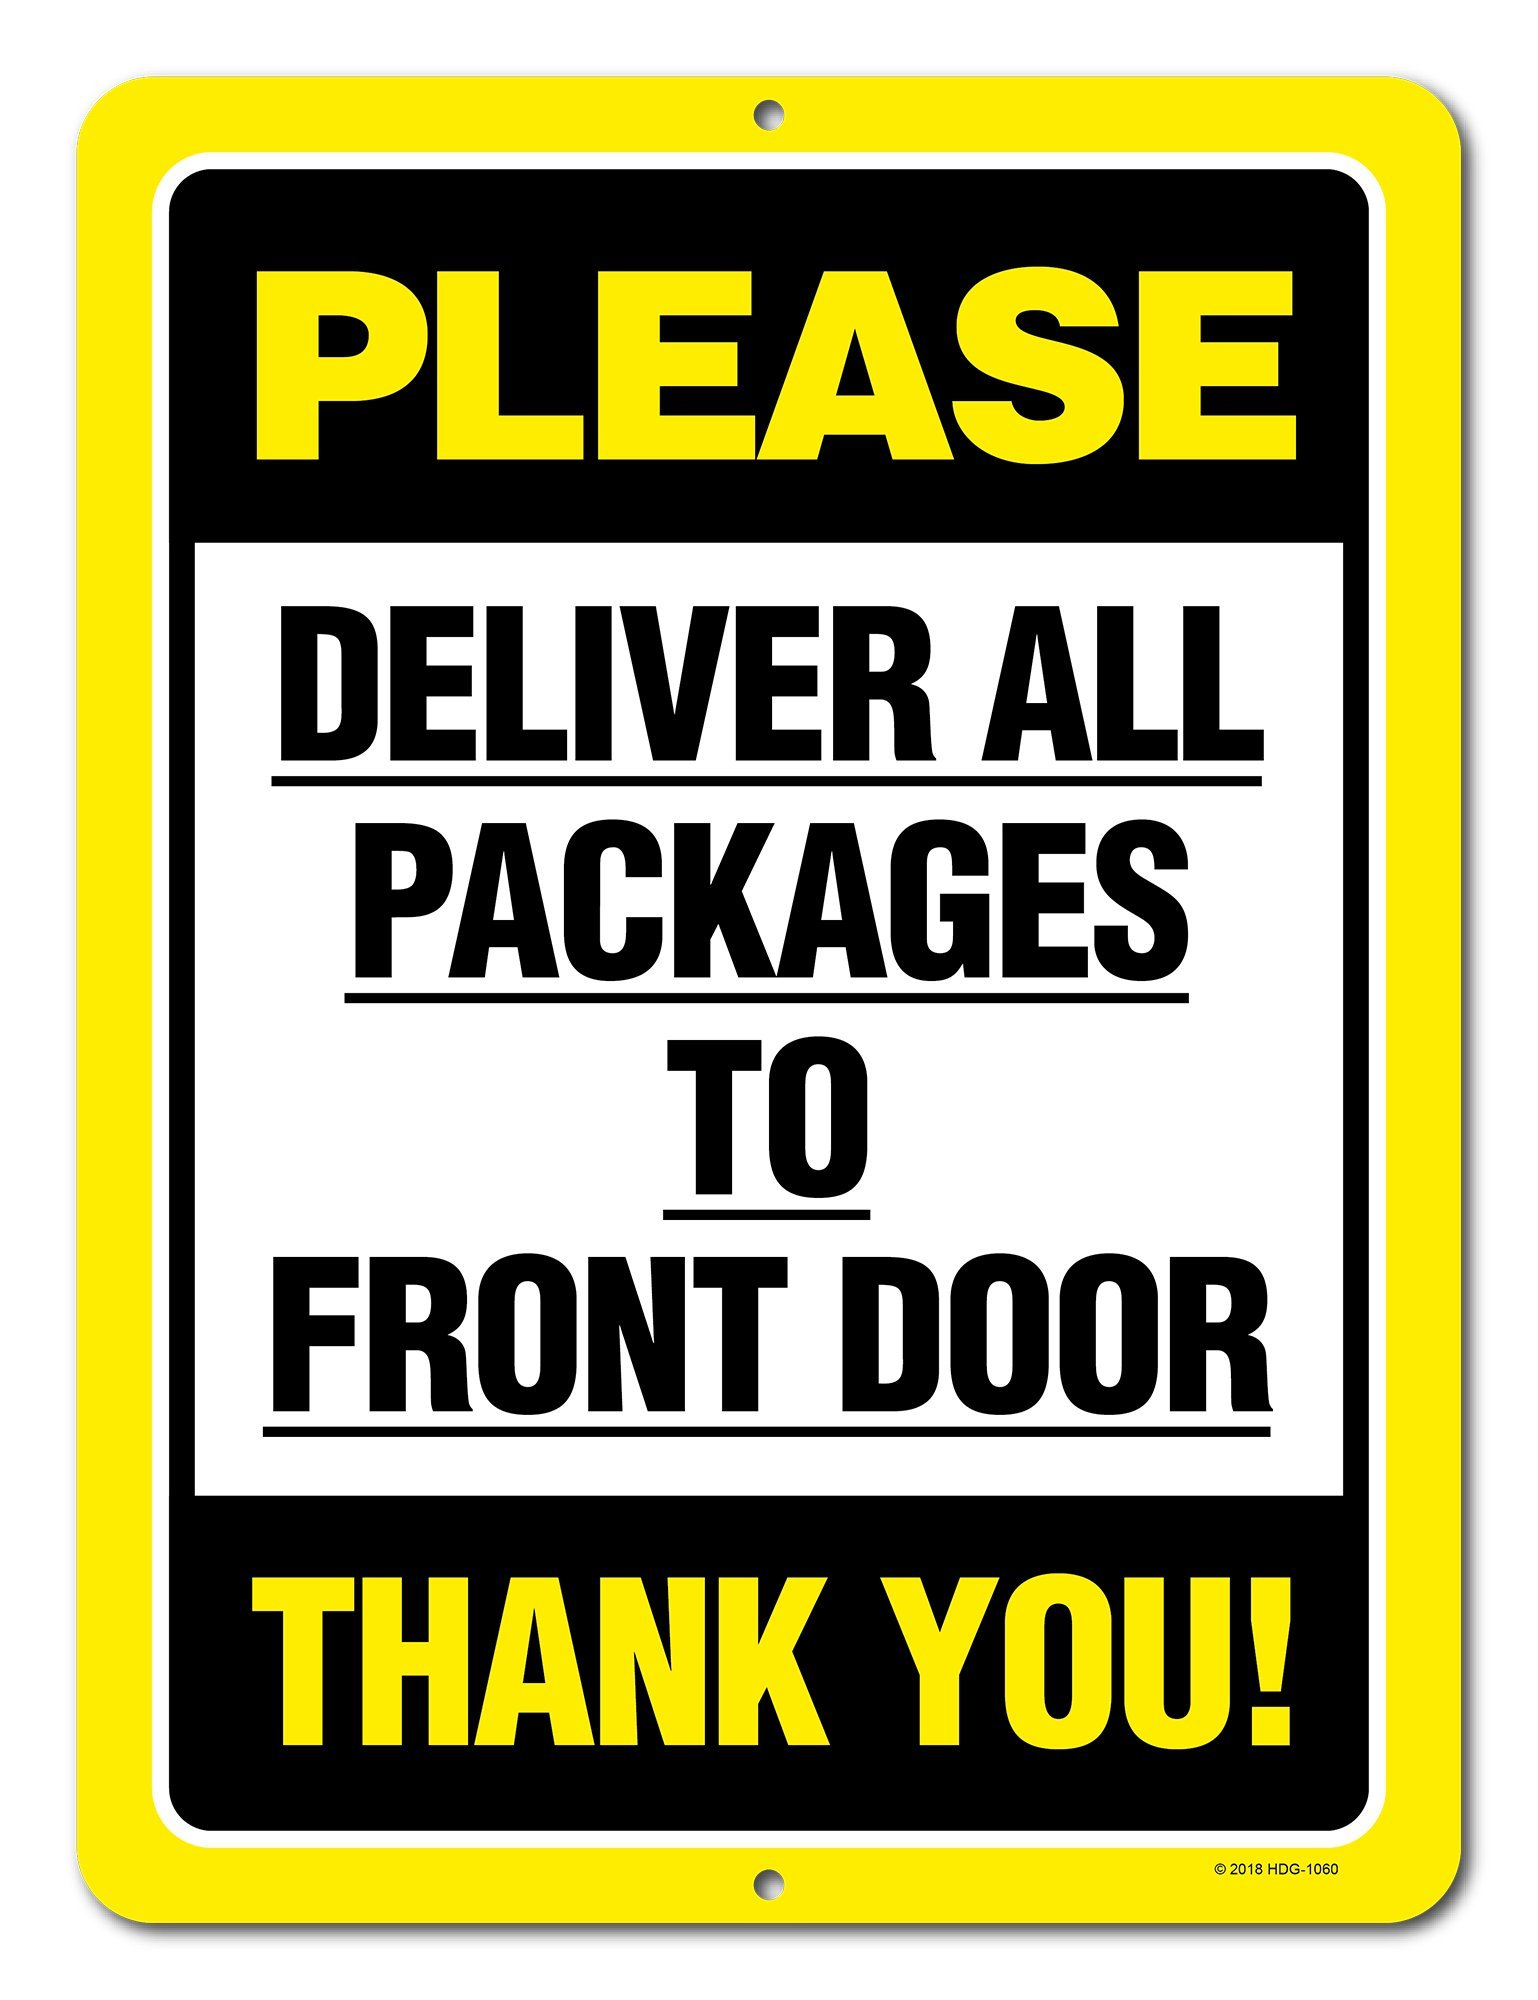 Please Deliver All Packages To Front Door - 9 x 12 inch Metal Aluminum Sign Decor - Made in the USA